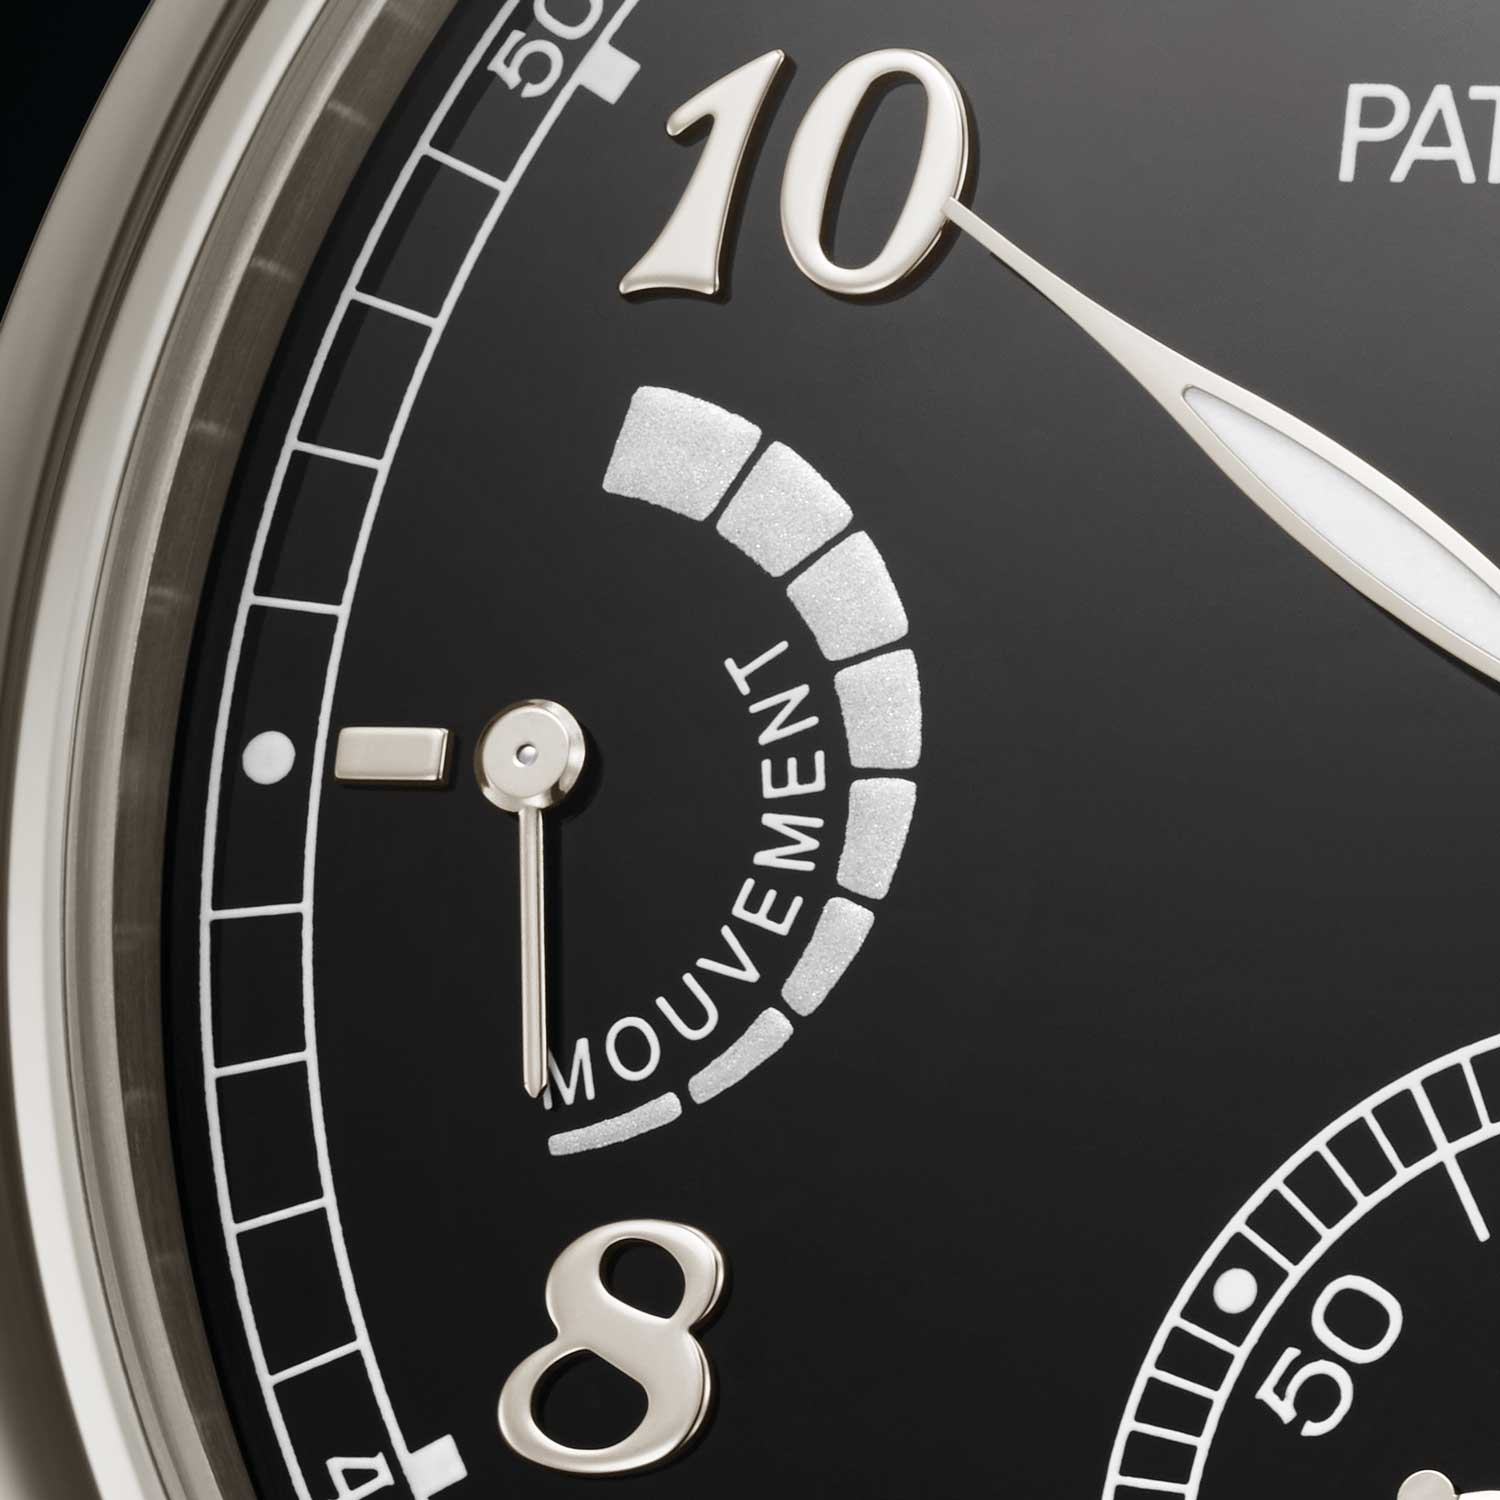 The Patek Philippe Ref. 6301P Grande Sonnerie features a power reserve indicator at 9 o'clock for the time keeping gear train